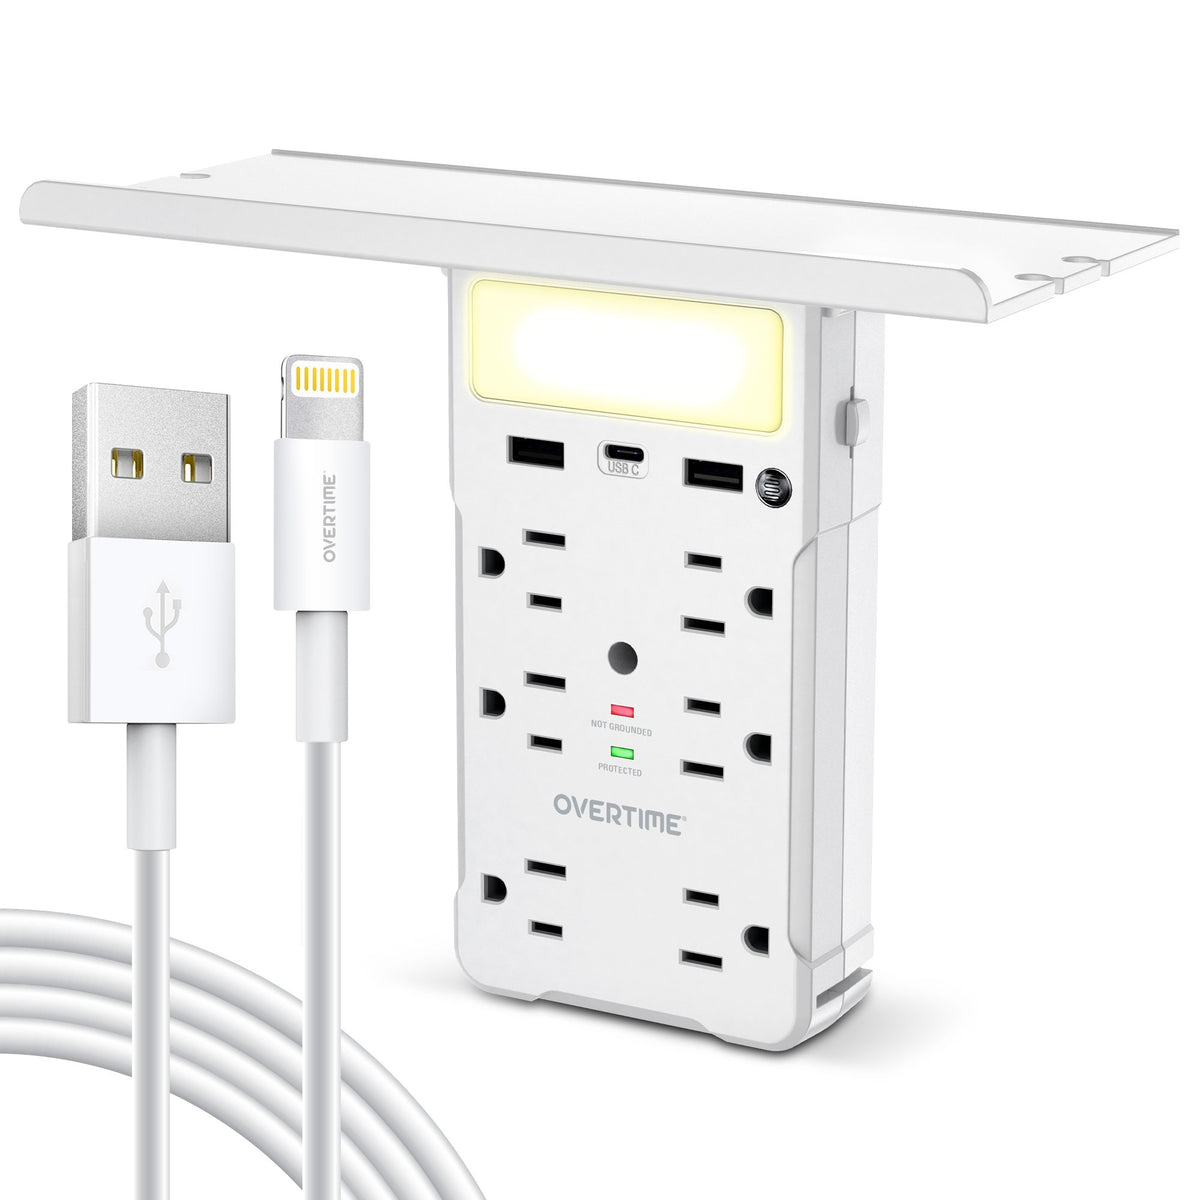 USB Outlet Shelf Night Light - Multi Plug Outlet Extender - Surge Protector with Apple MFi Cables (4ft)